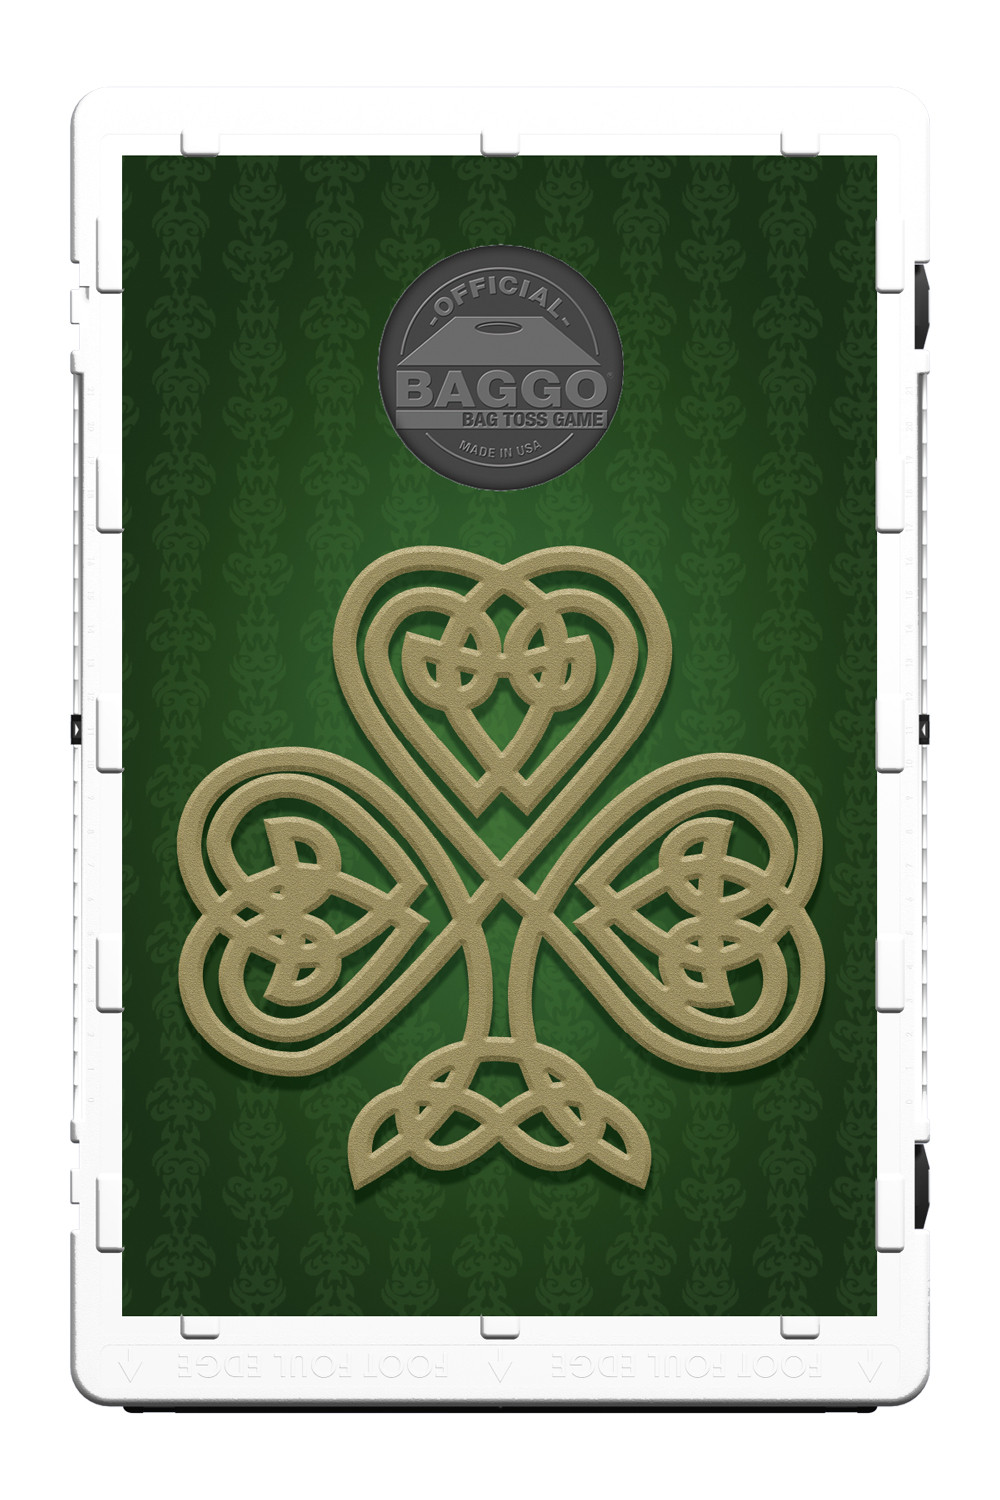 Celtic Shamrock Screens (only) by Baggo